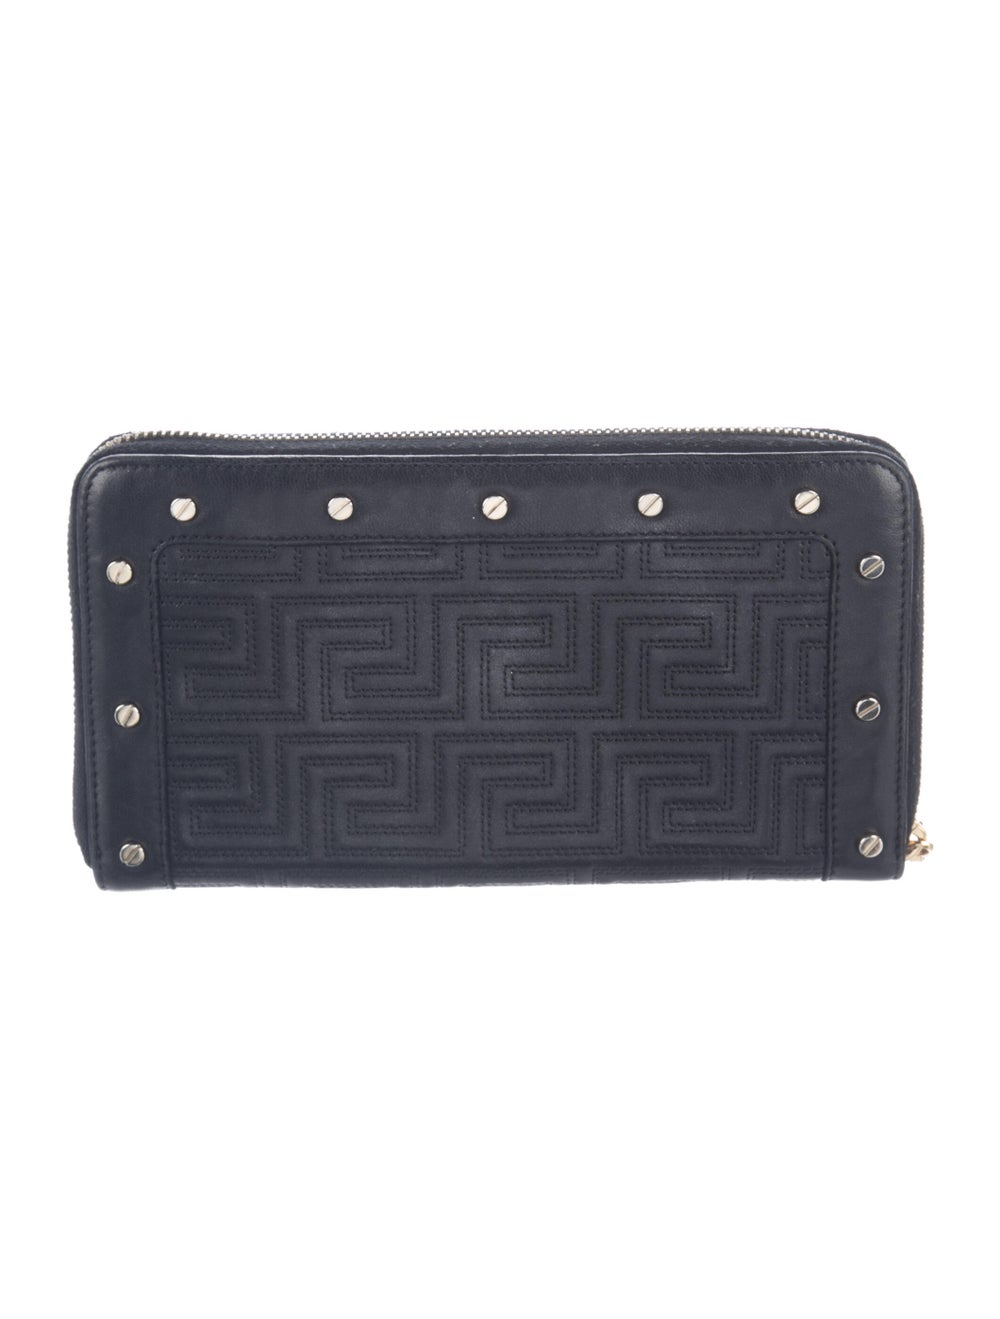 Gianni Versace Leather Continental Wallet Black - image 4